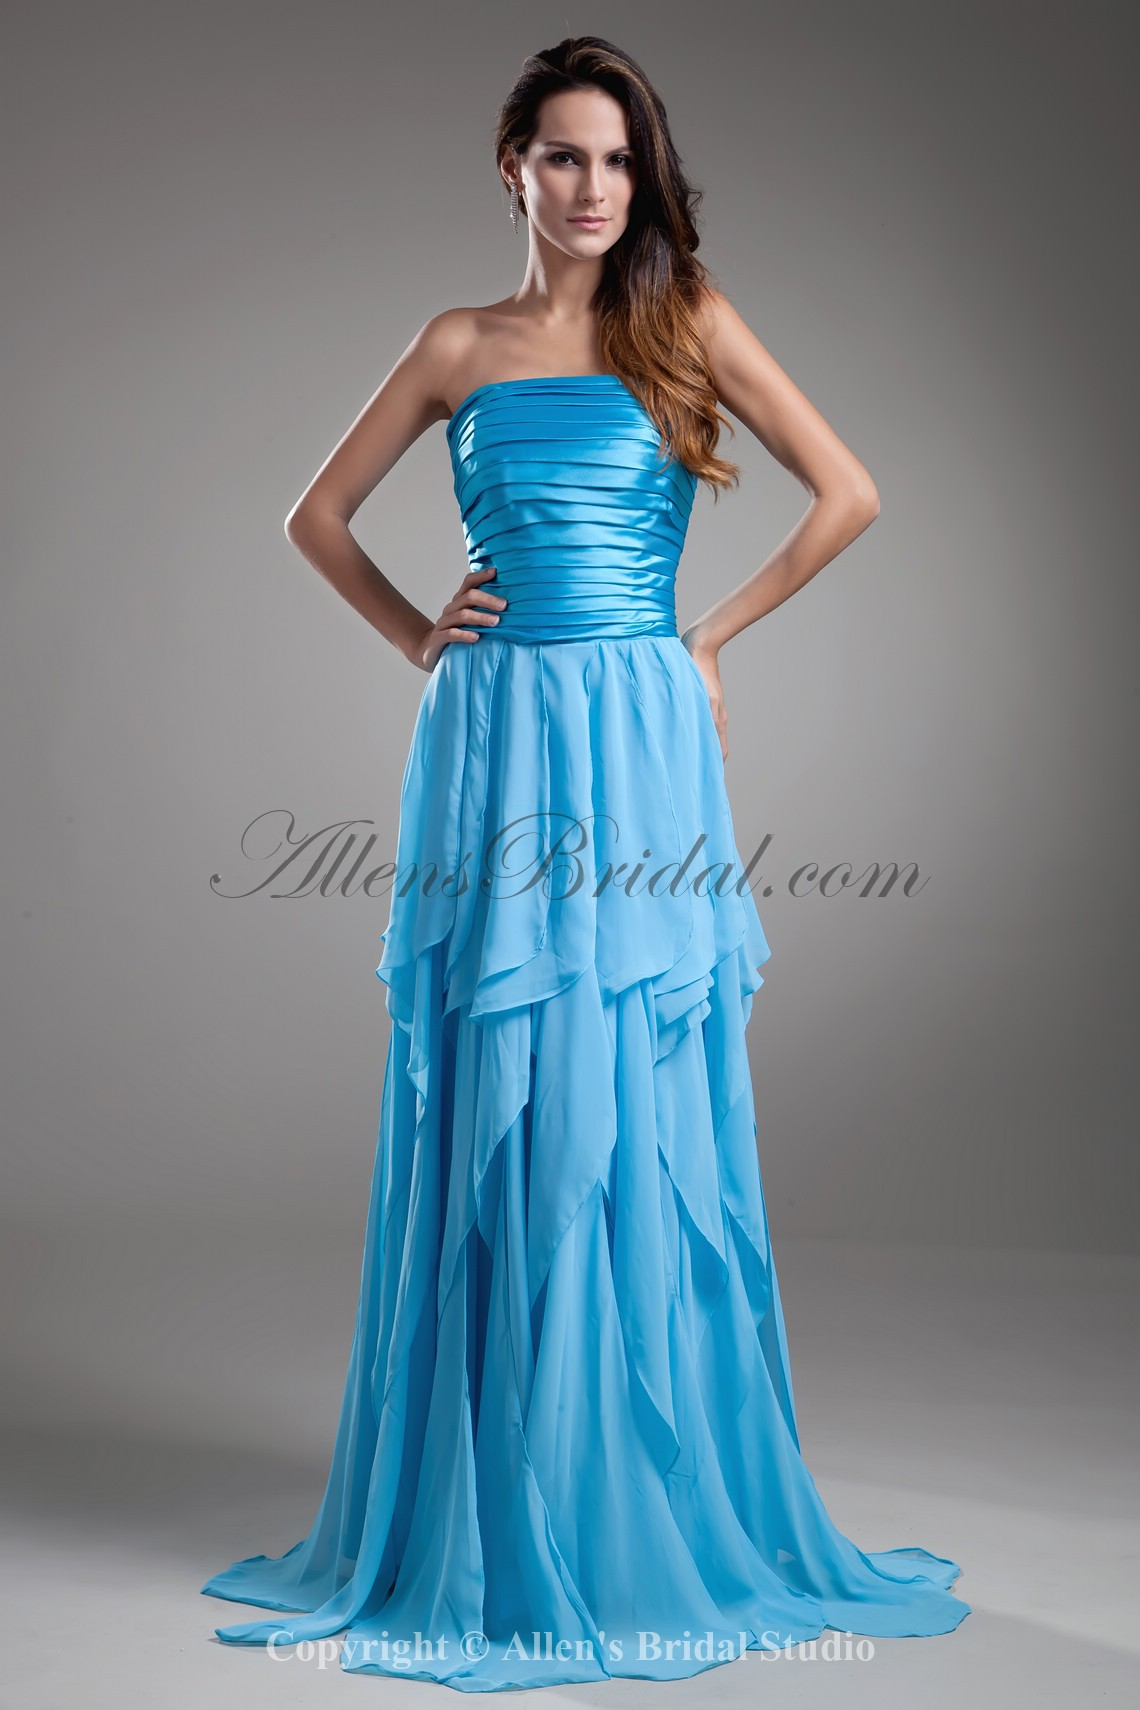 /717-5739/chiffon-strapless-neckline-sweep-train-column-directionally-ruched-prom-dress.jpg